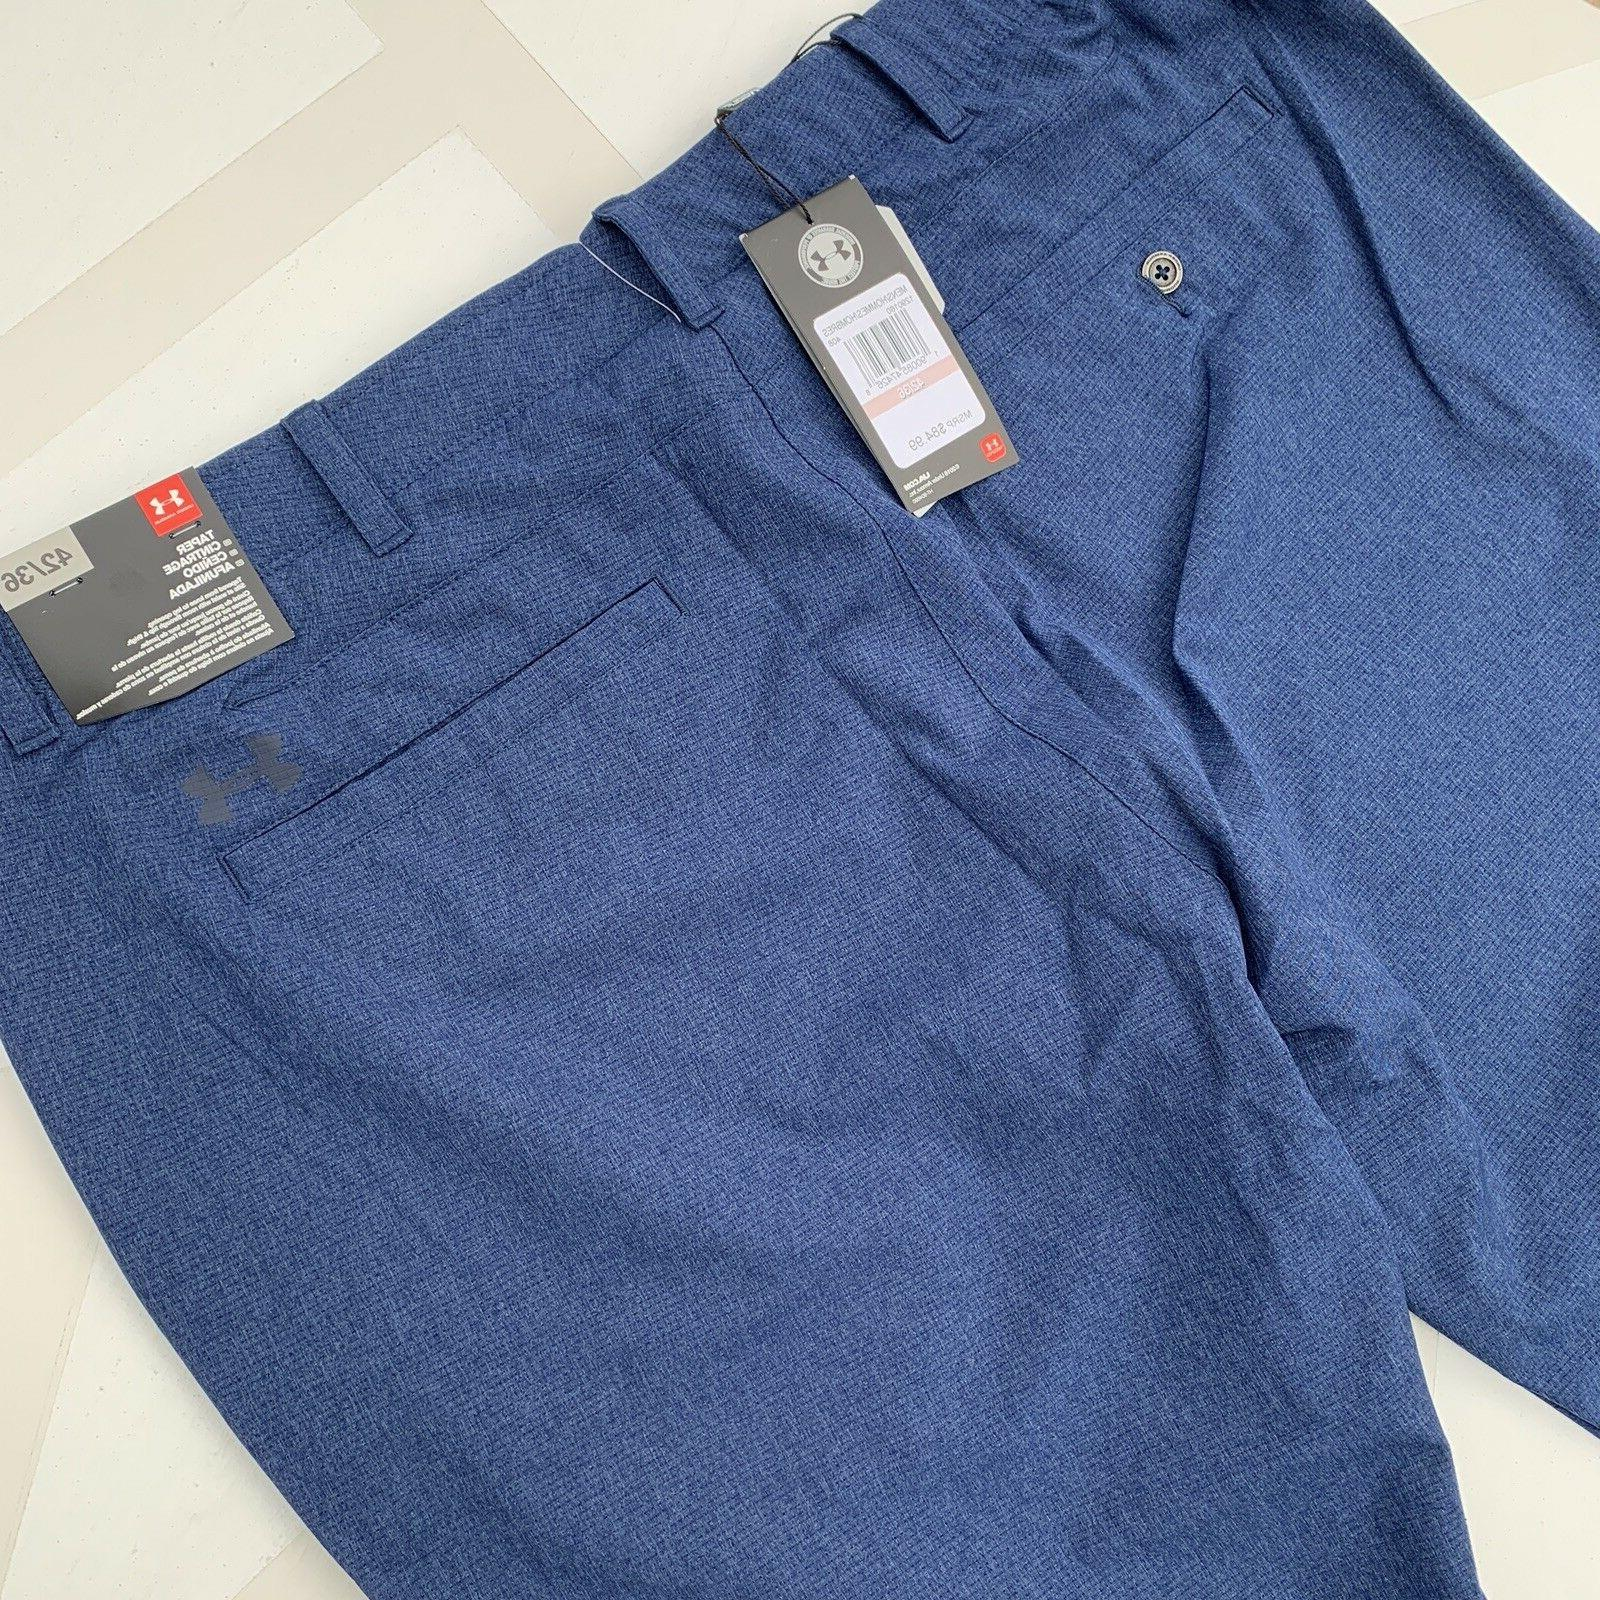 NEW Under Armour Size 42x36 Fit Match Navy